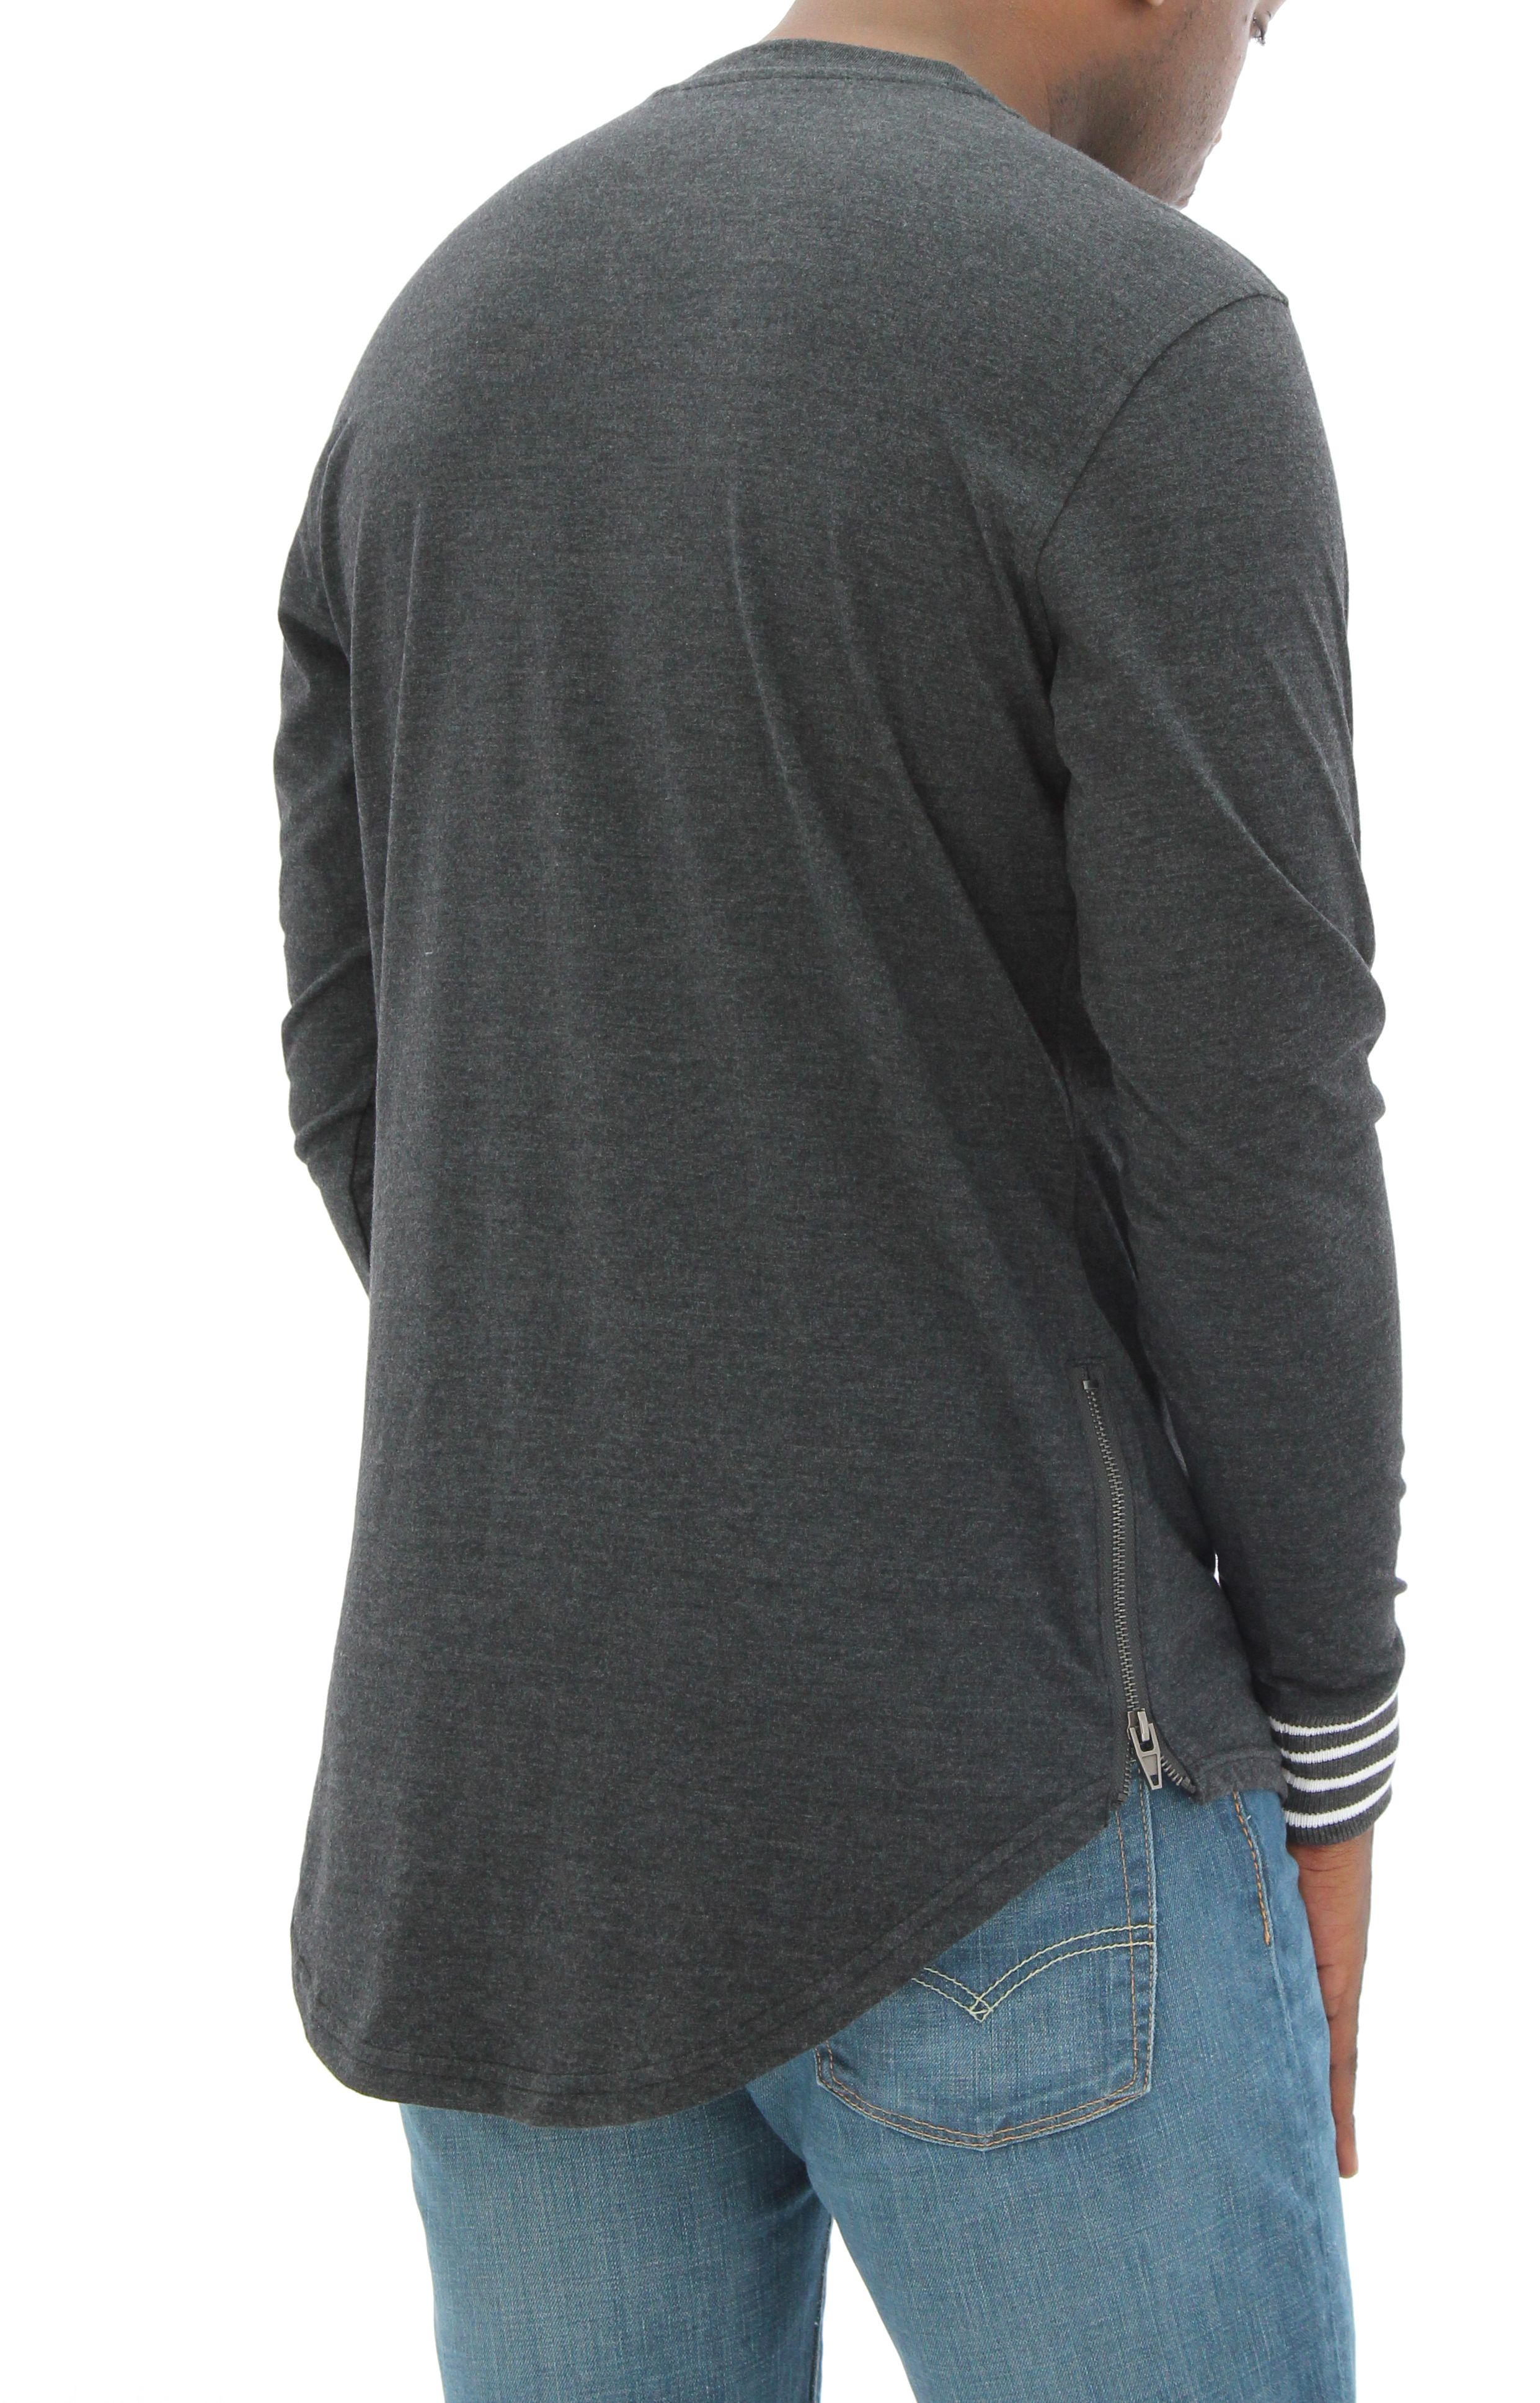 0044c32b8 Details about Smoke Rise Men's Scalloped Longline Side Zippers Long Sleeve  T Shirt